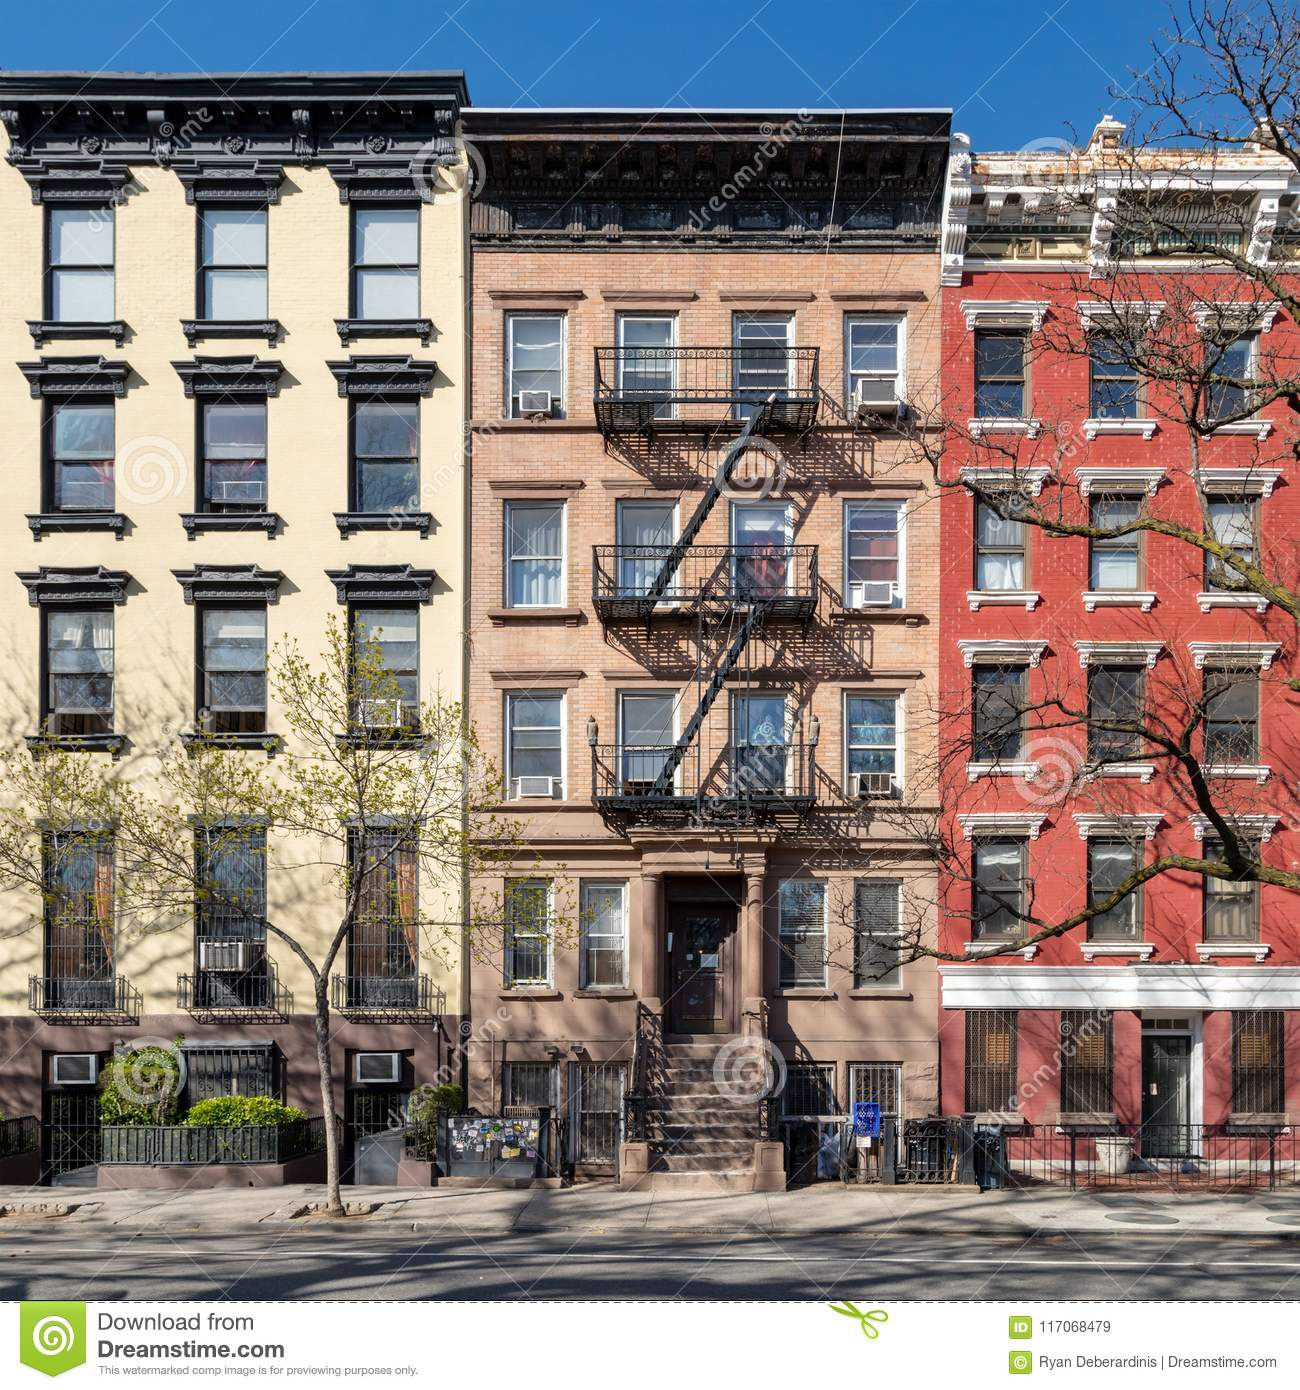 East Village New York Apartments: Colorful Old Buildings In The East Village Of New York